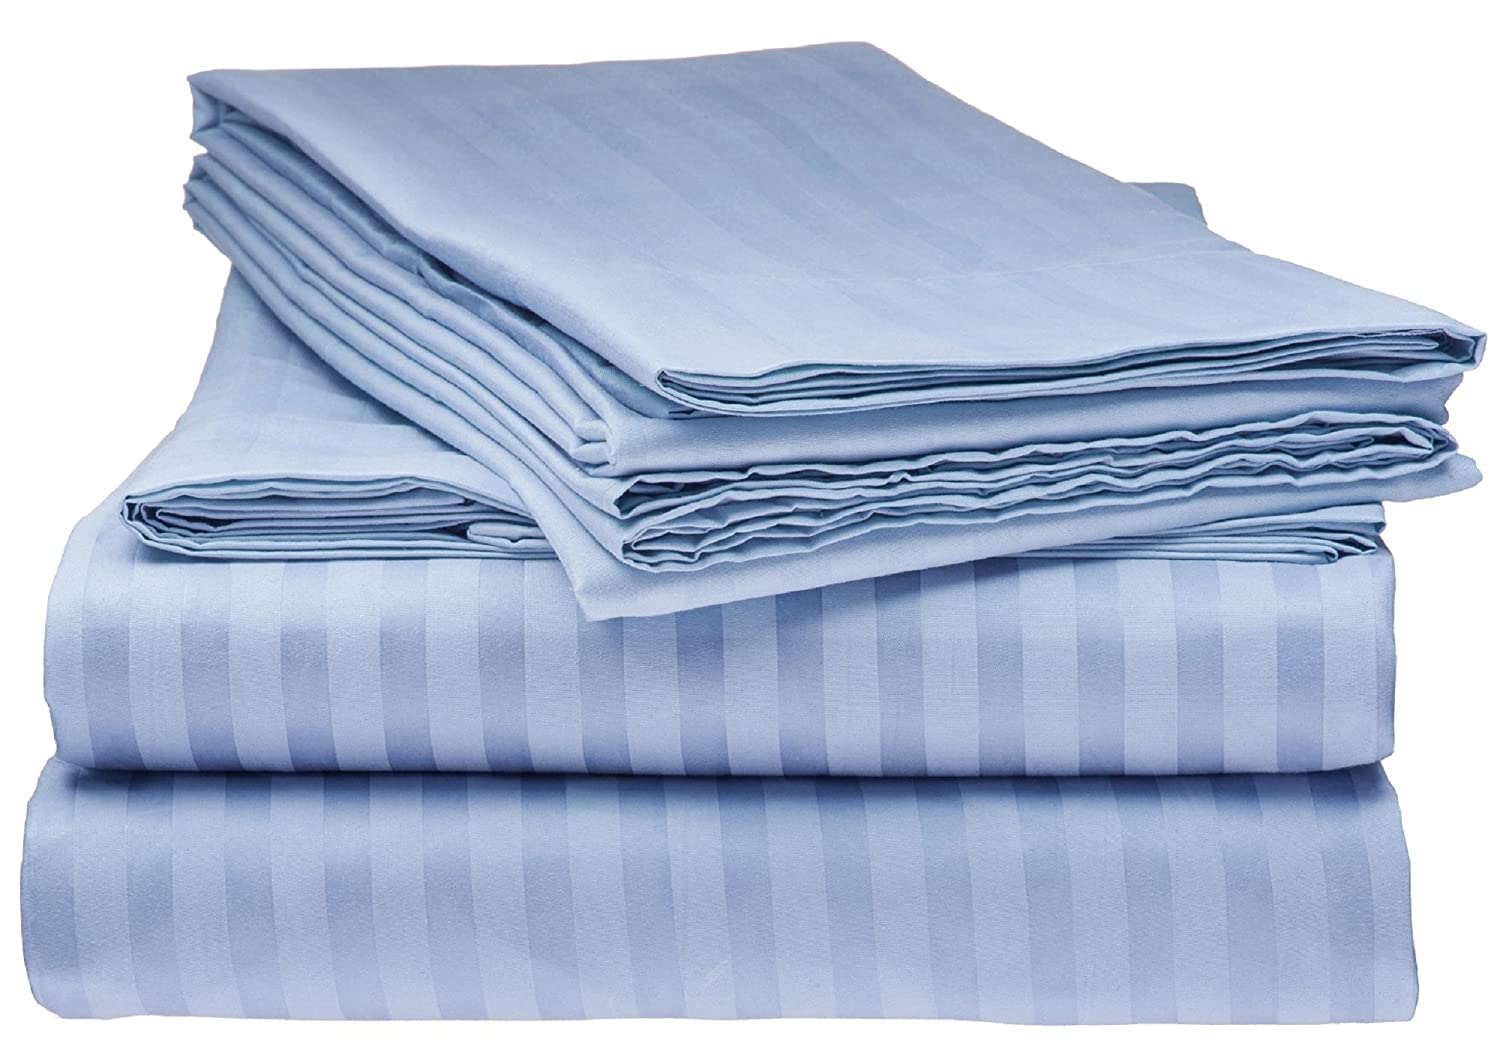 Bella kline Bedding 1800 Series 4 pc Bed Sheet Set with Pillowcases Hypoallergenic, 1 Soft Silky Luxurious Feel, Fitted and Flat Sheets Lifetime - Twin Size, Light Blue